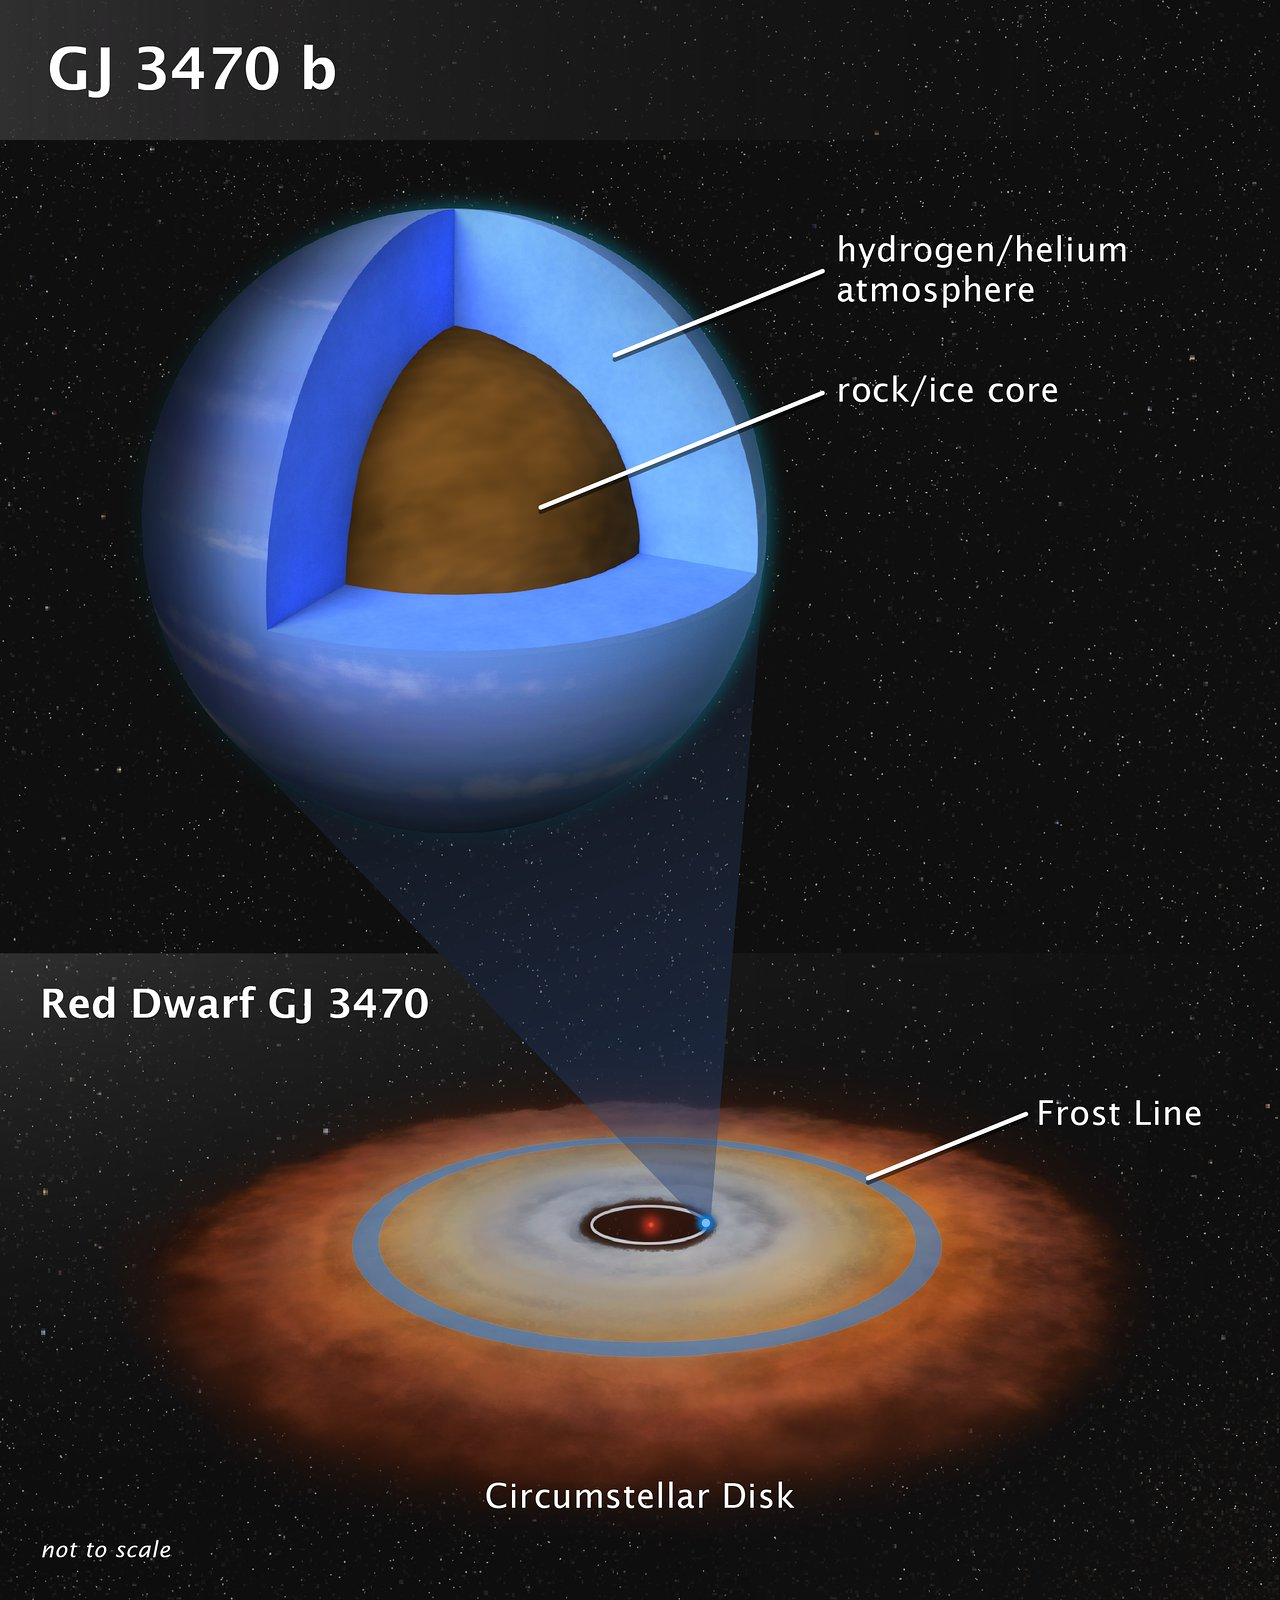 Structure of Exoplanet GJ 3470 b